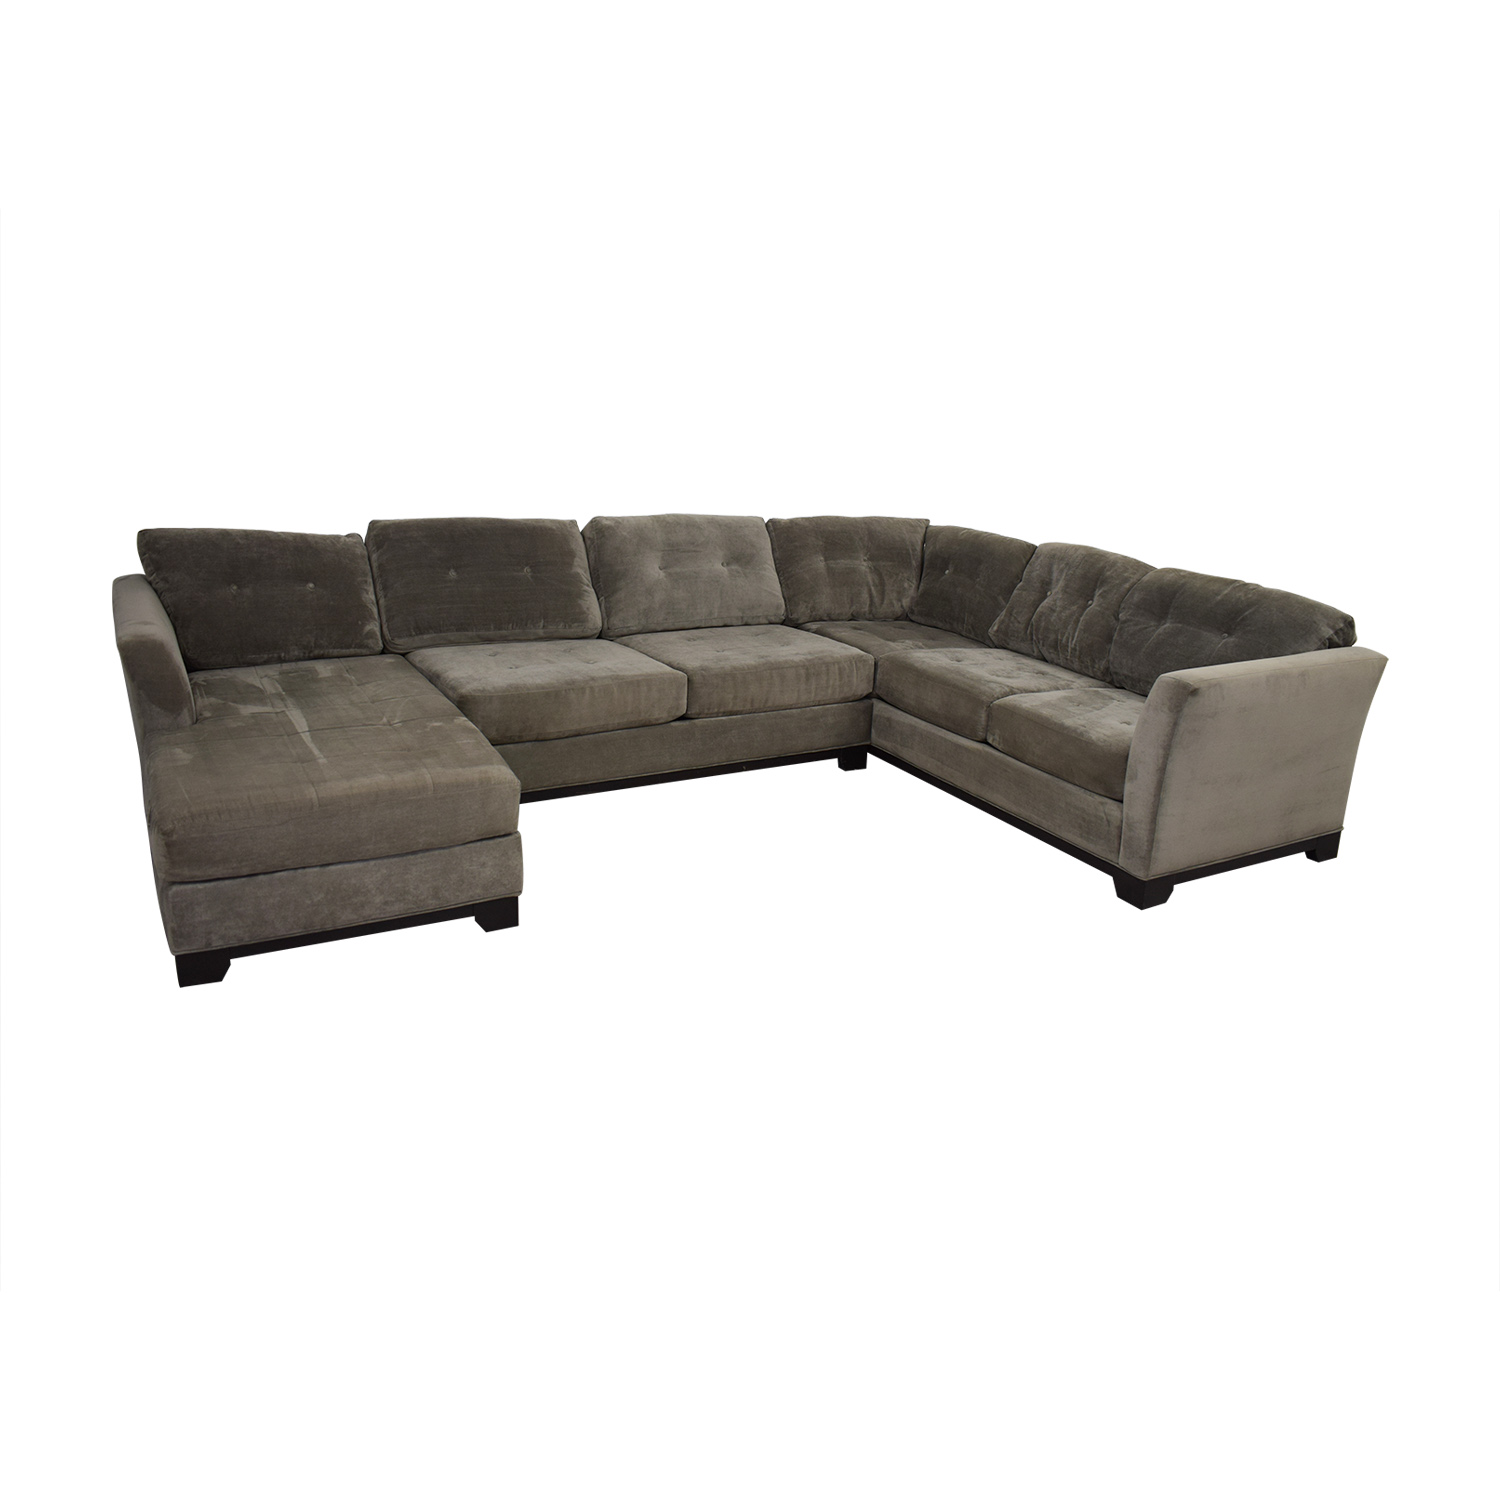 ... Jonathan Lewis Jonathan Lewis Elliot Grey Tufted Microfiber Chaise  U Shaped Sectional Sectionals ...